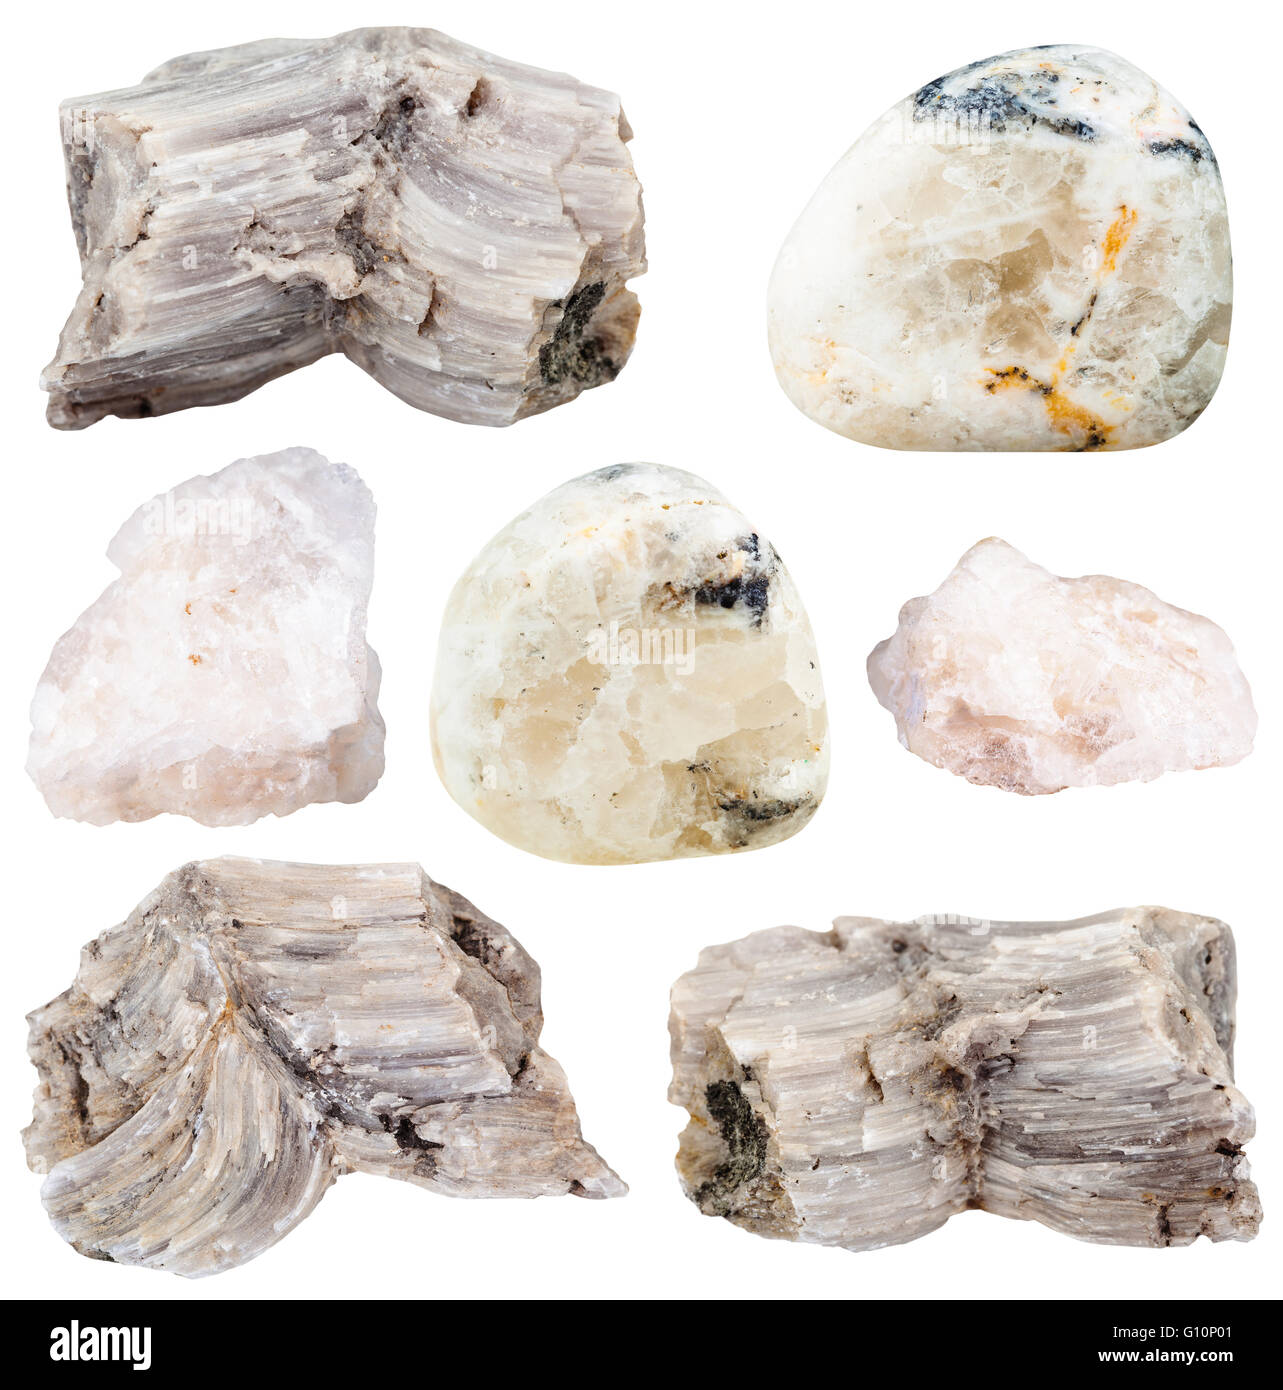 set of various baryte (barite) natural mineral stones and gemstones isolated on white background - Stock Image